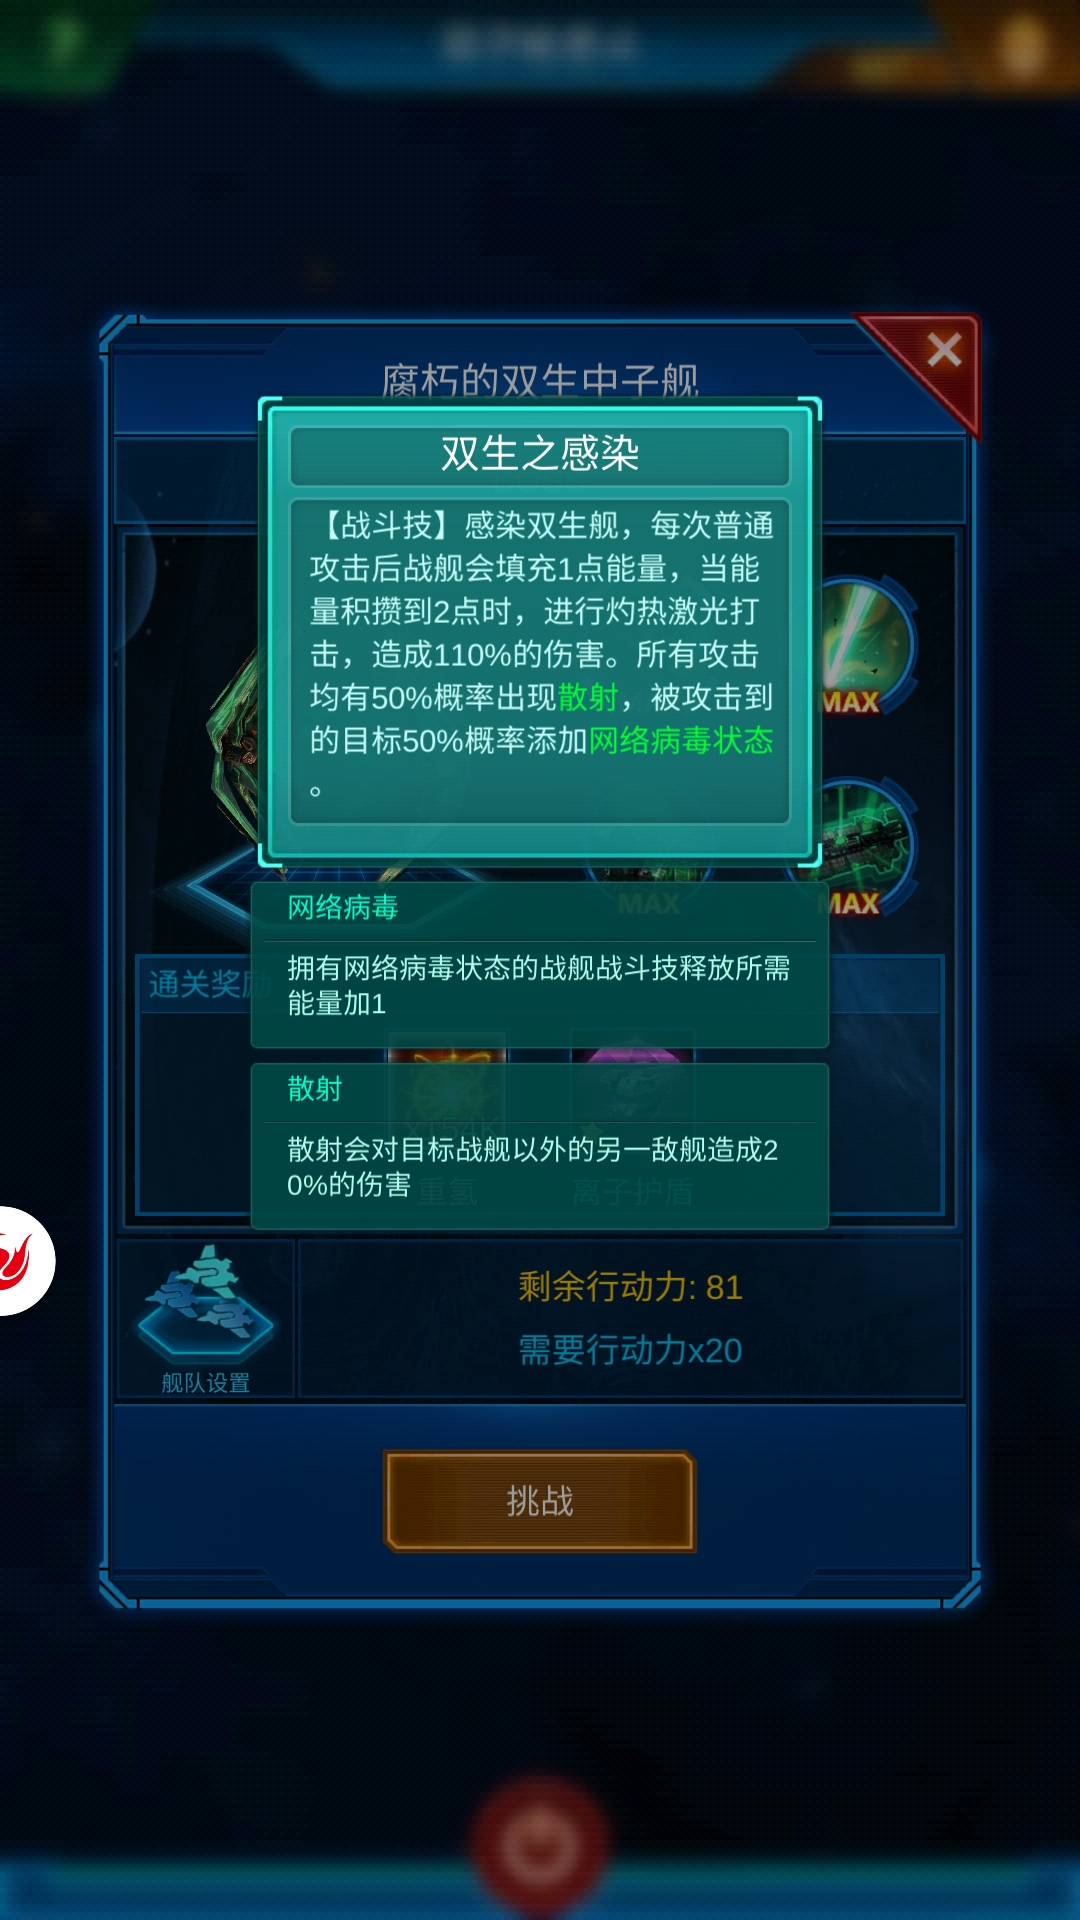 学校资料Screenshot_20200409-152715.jpg